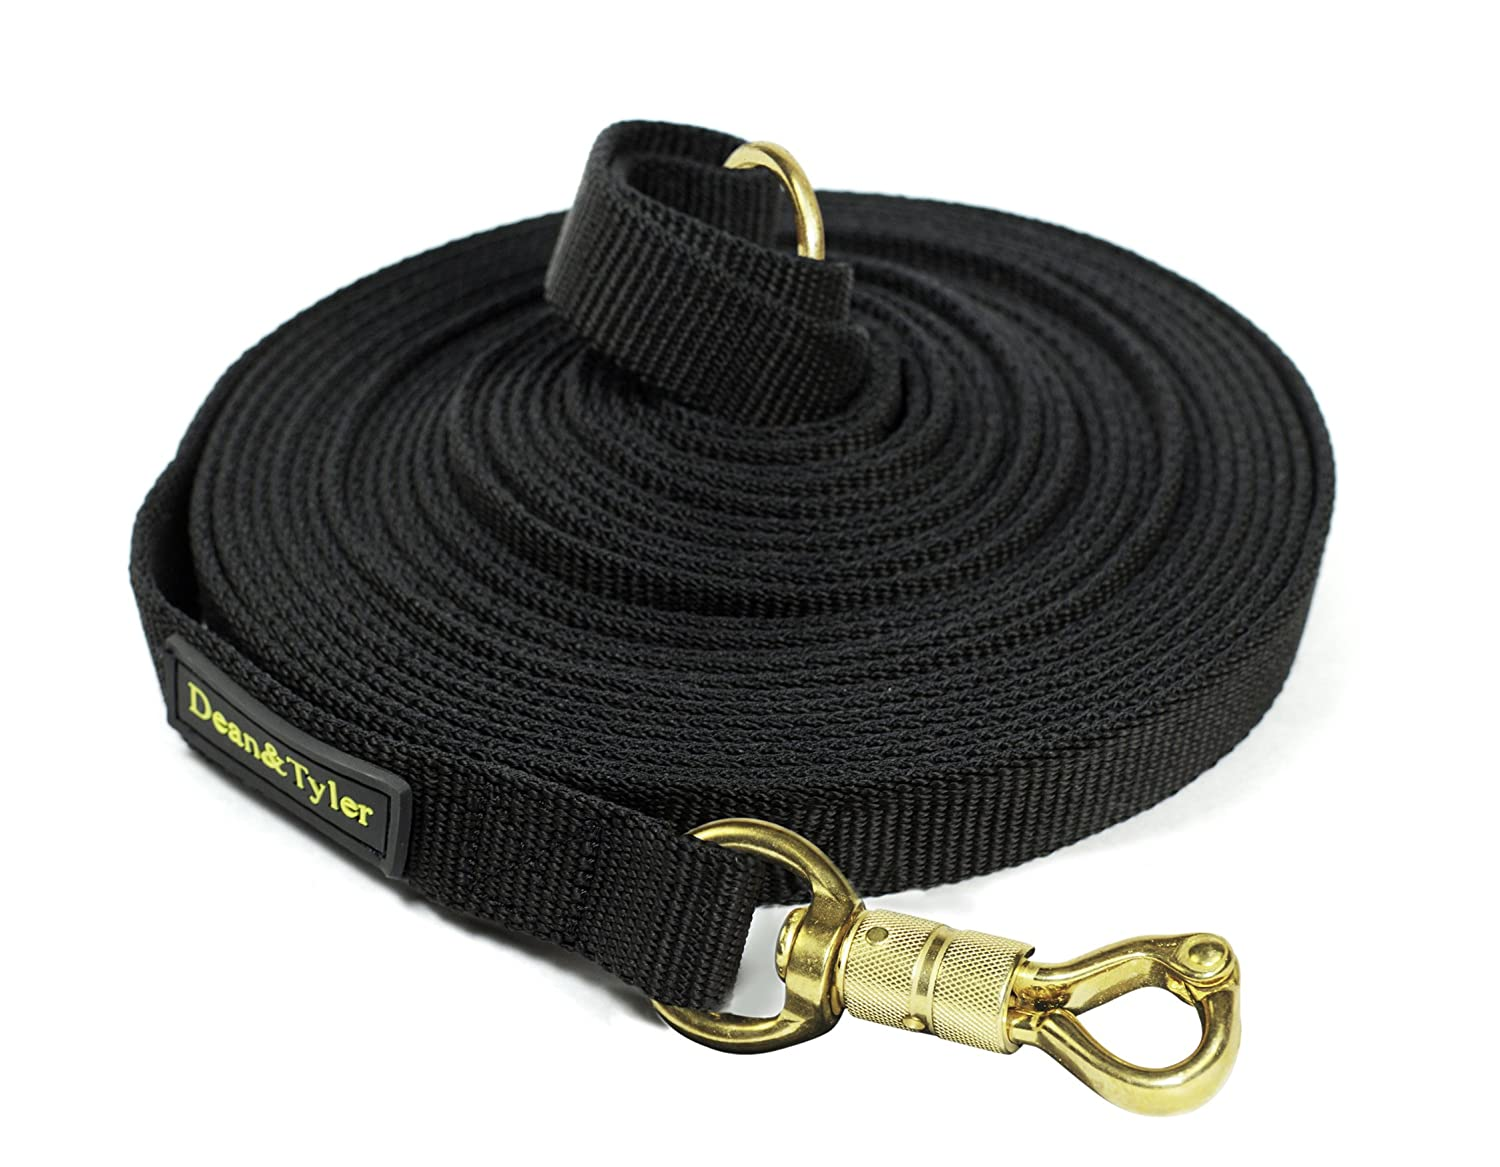 Dean & Tyler Track Single Ply Black Nylon 10-Feet by 3/4-Inch Dog Leash with a Ring on Handle and Smart Lock Snap Hook dean demonator 4 bkcr